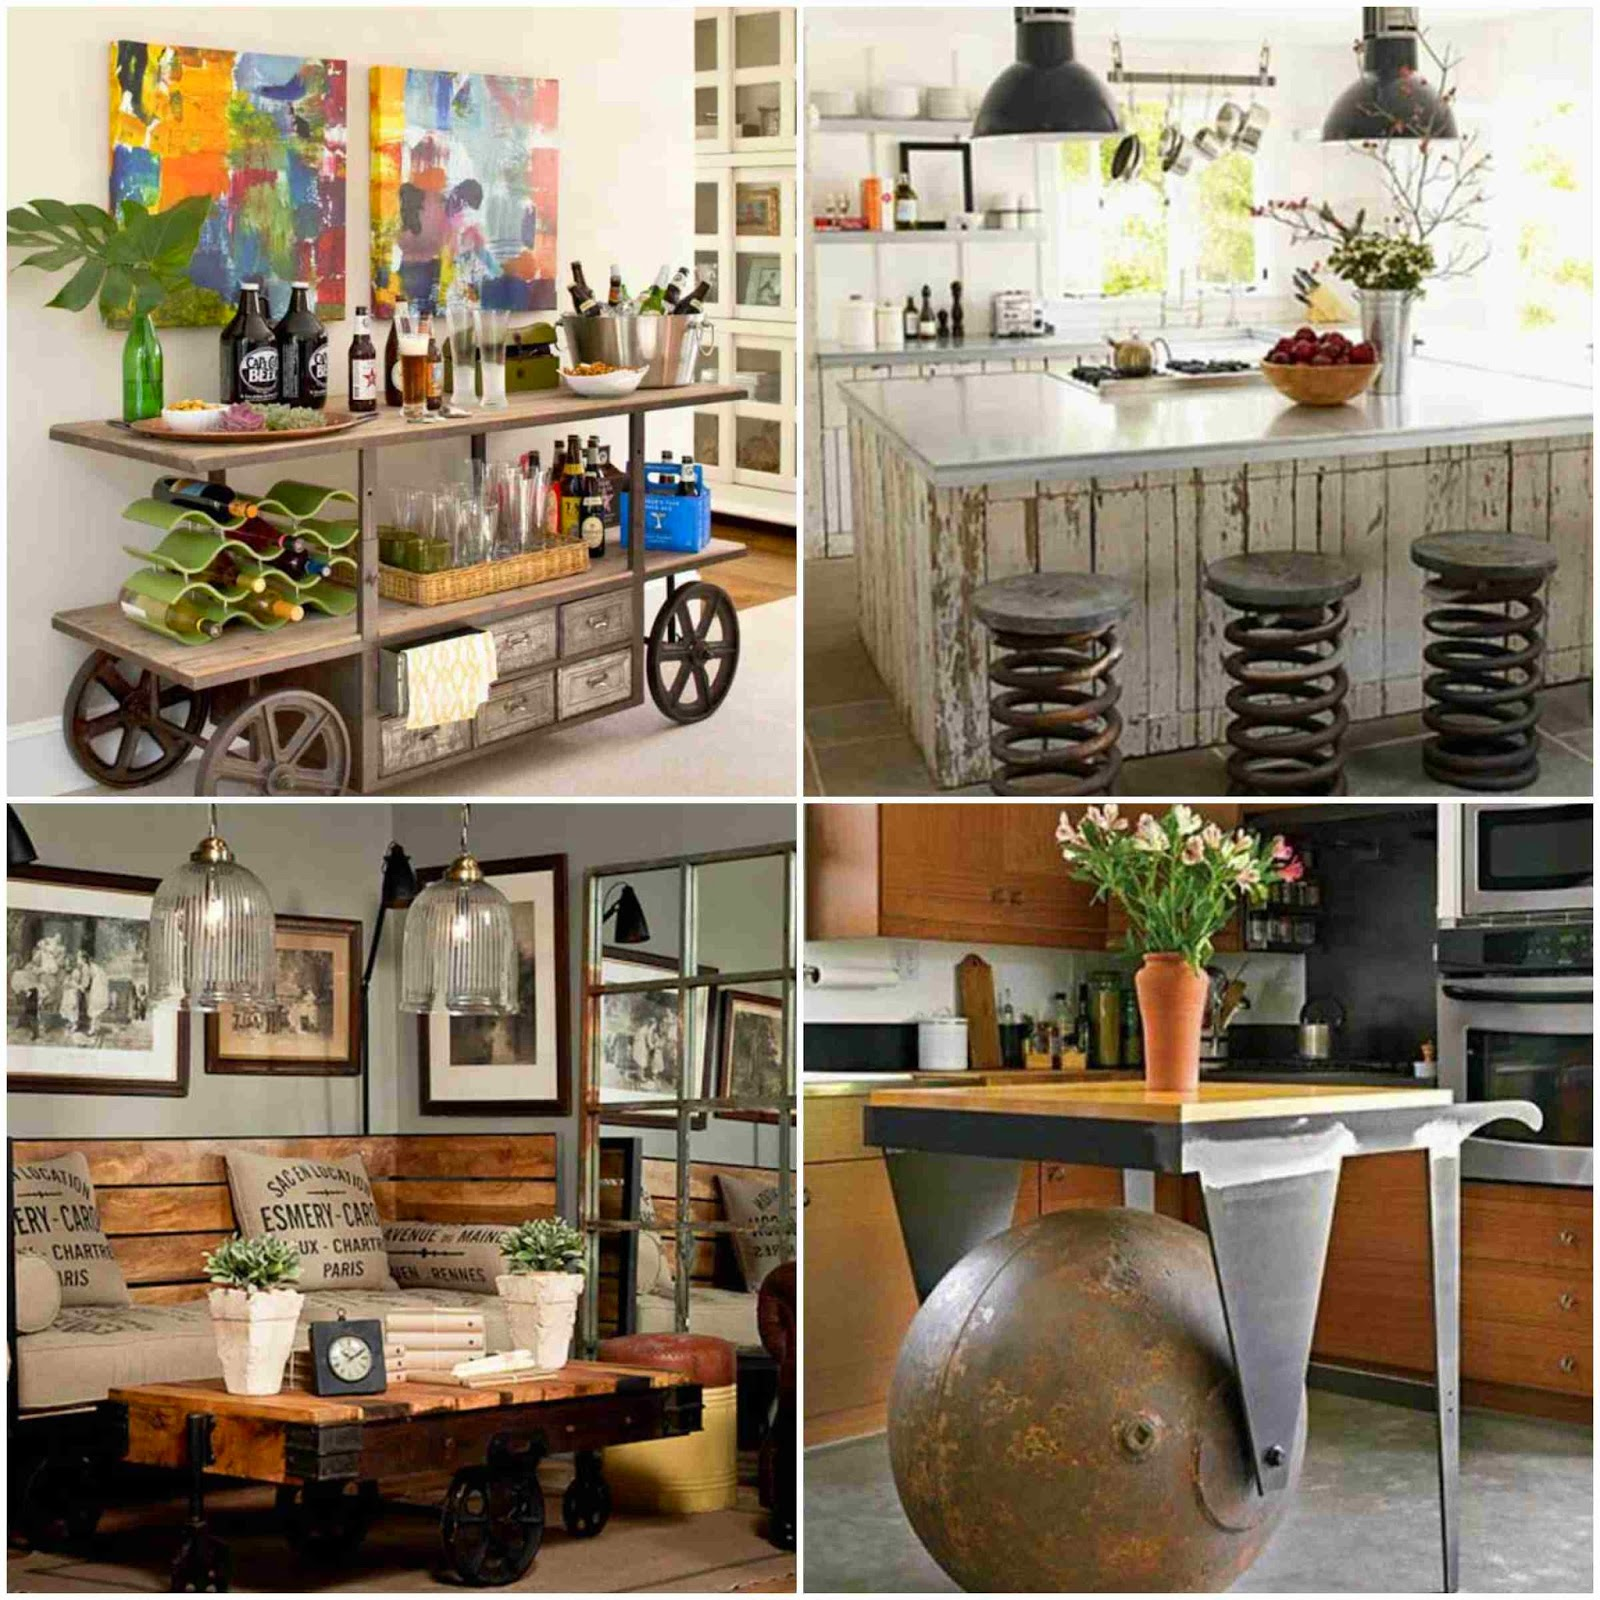 Industrial chic furniture ideas Loft Diy Industrial Furniture Ideas For Your Home Diy Fun World Jpg 1600x1600 Diy Industrial Chic Furniture Evaundalexinfo Diy Industrial Chic Furniture Wwwtopsimagescom